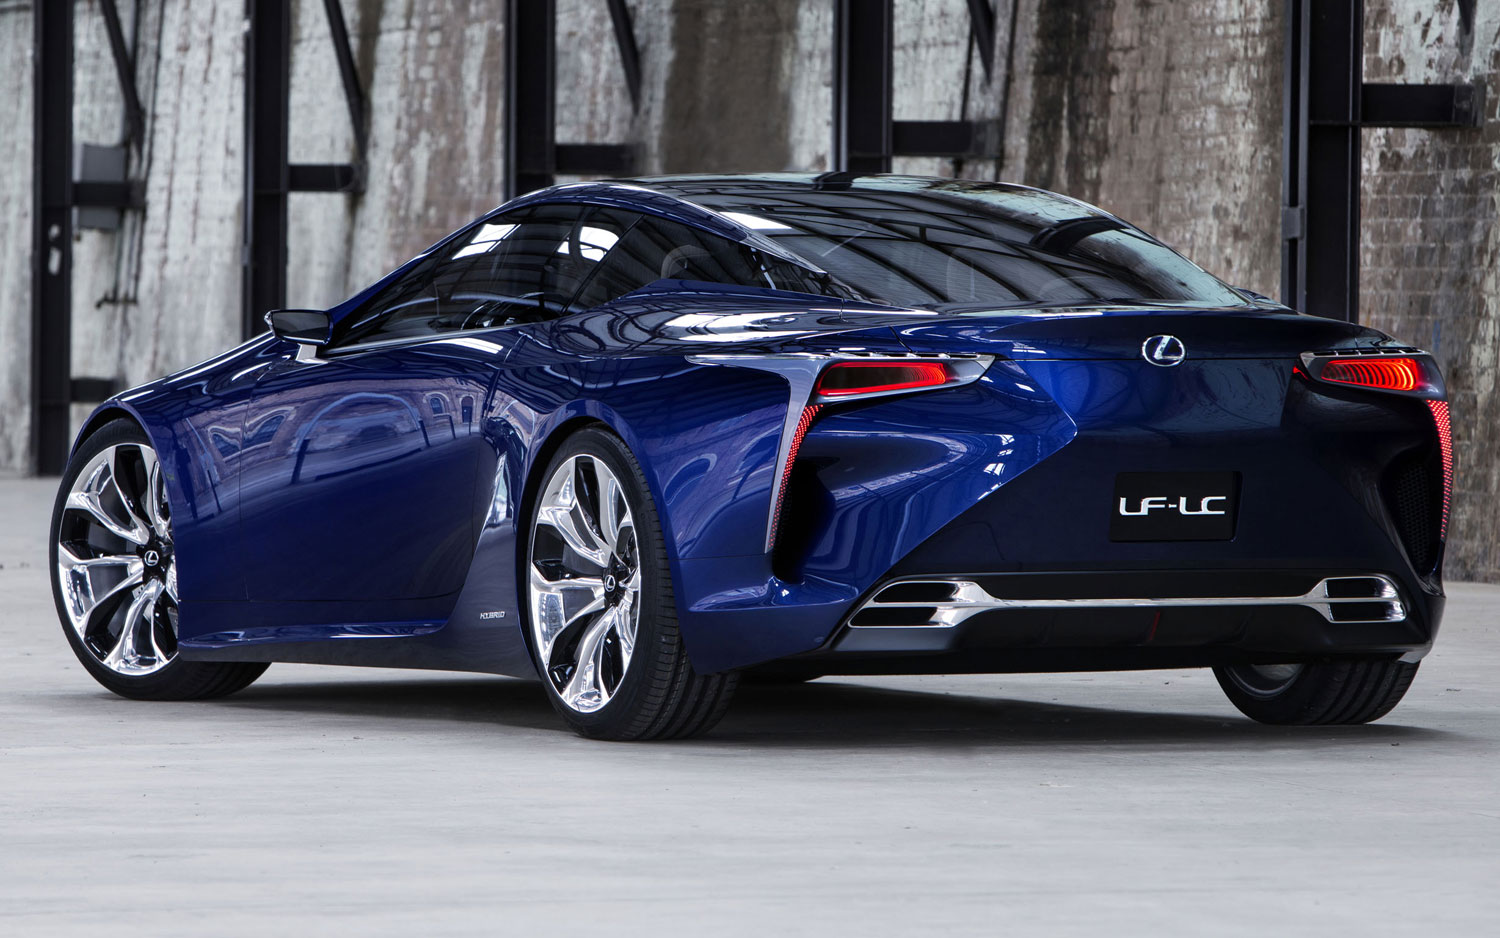 Lexus Lf Lc Stock Photos &amp- Lexus Lf Lc Stock Images - Alamy